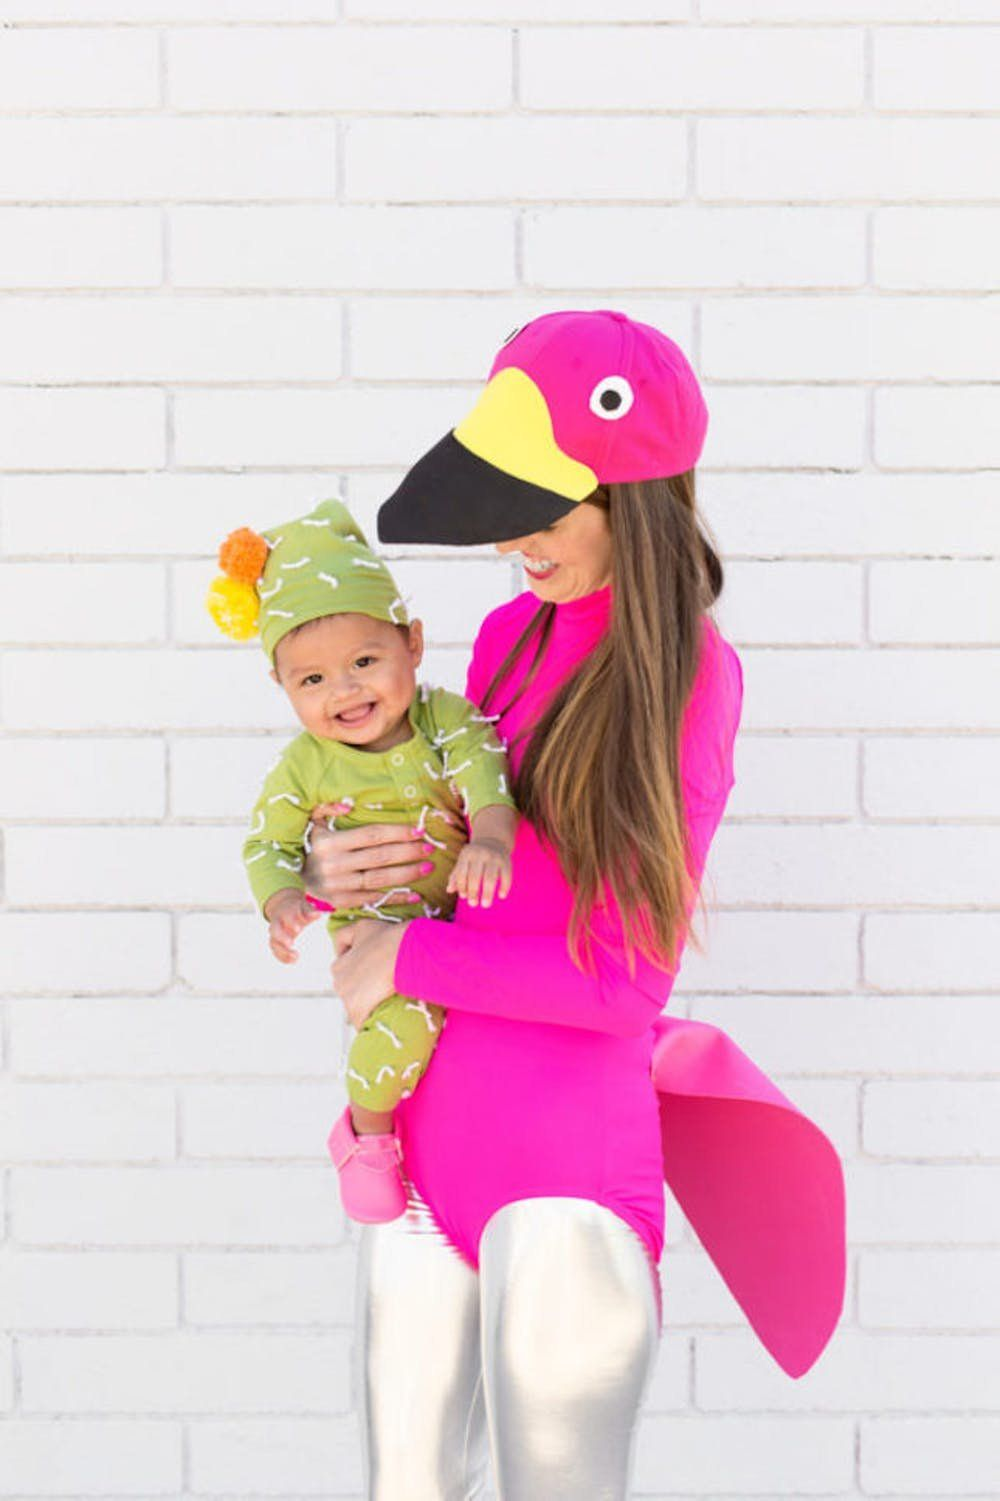 Clever family halloween costume ideas for you and your kids